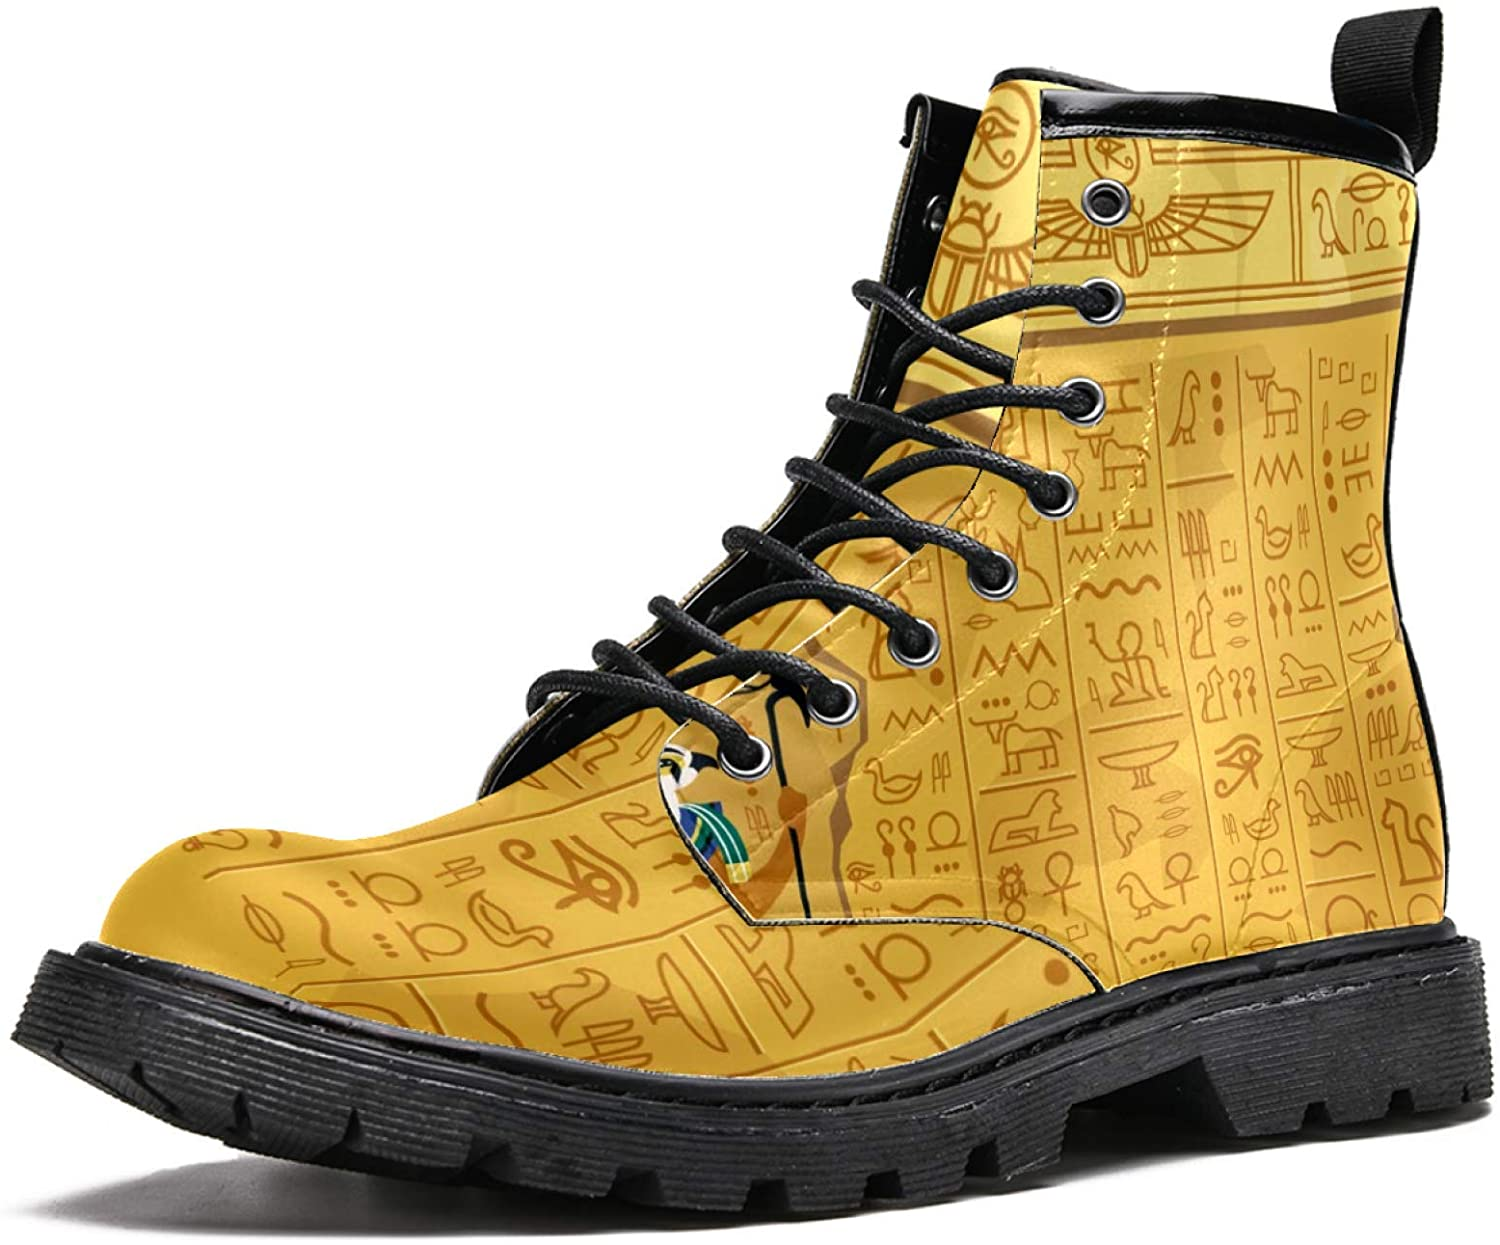 LORVIES Egypt Hieroglyphic Men's High Top Boots Lace Up Casual Leather Ankle Shoes